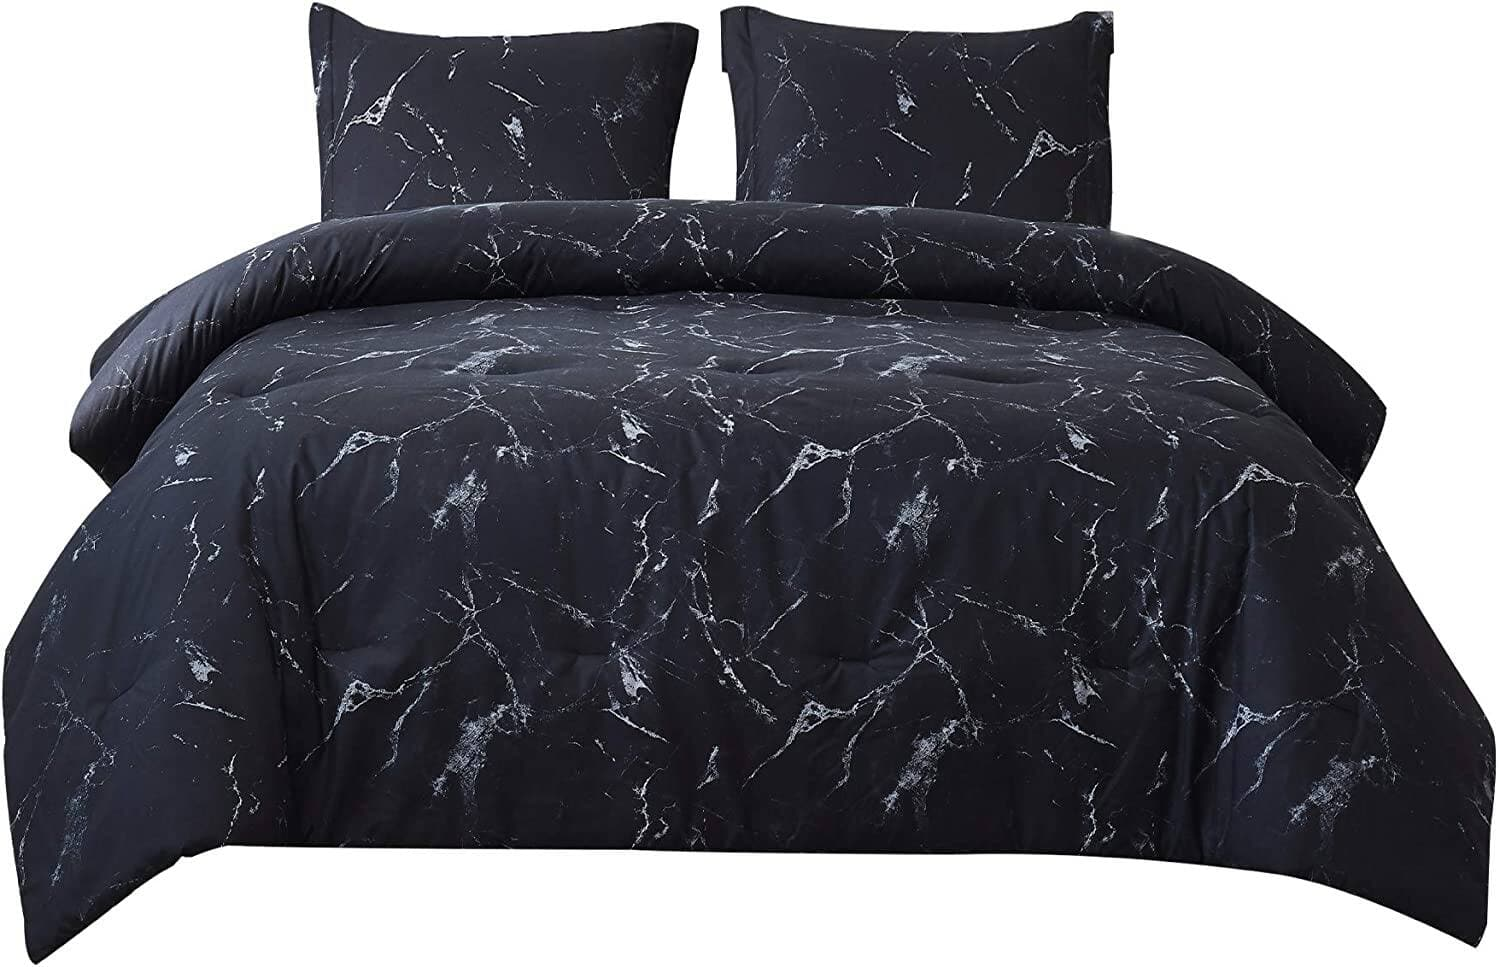 Bedsure Marble Printed Comforter Set (Twin, Black) 2 Piece Sets, Various Sizes Available from $21.99 + Free Shipping